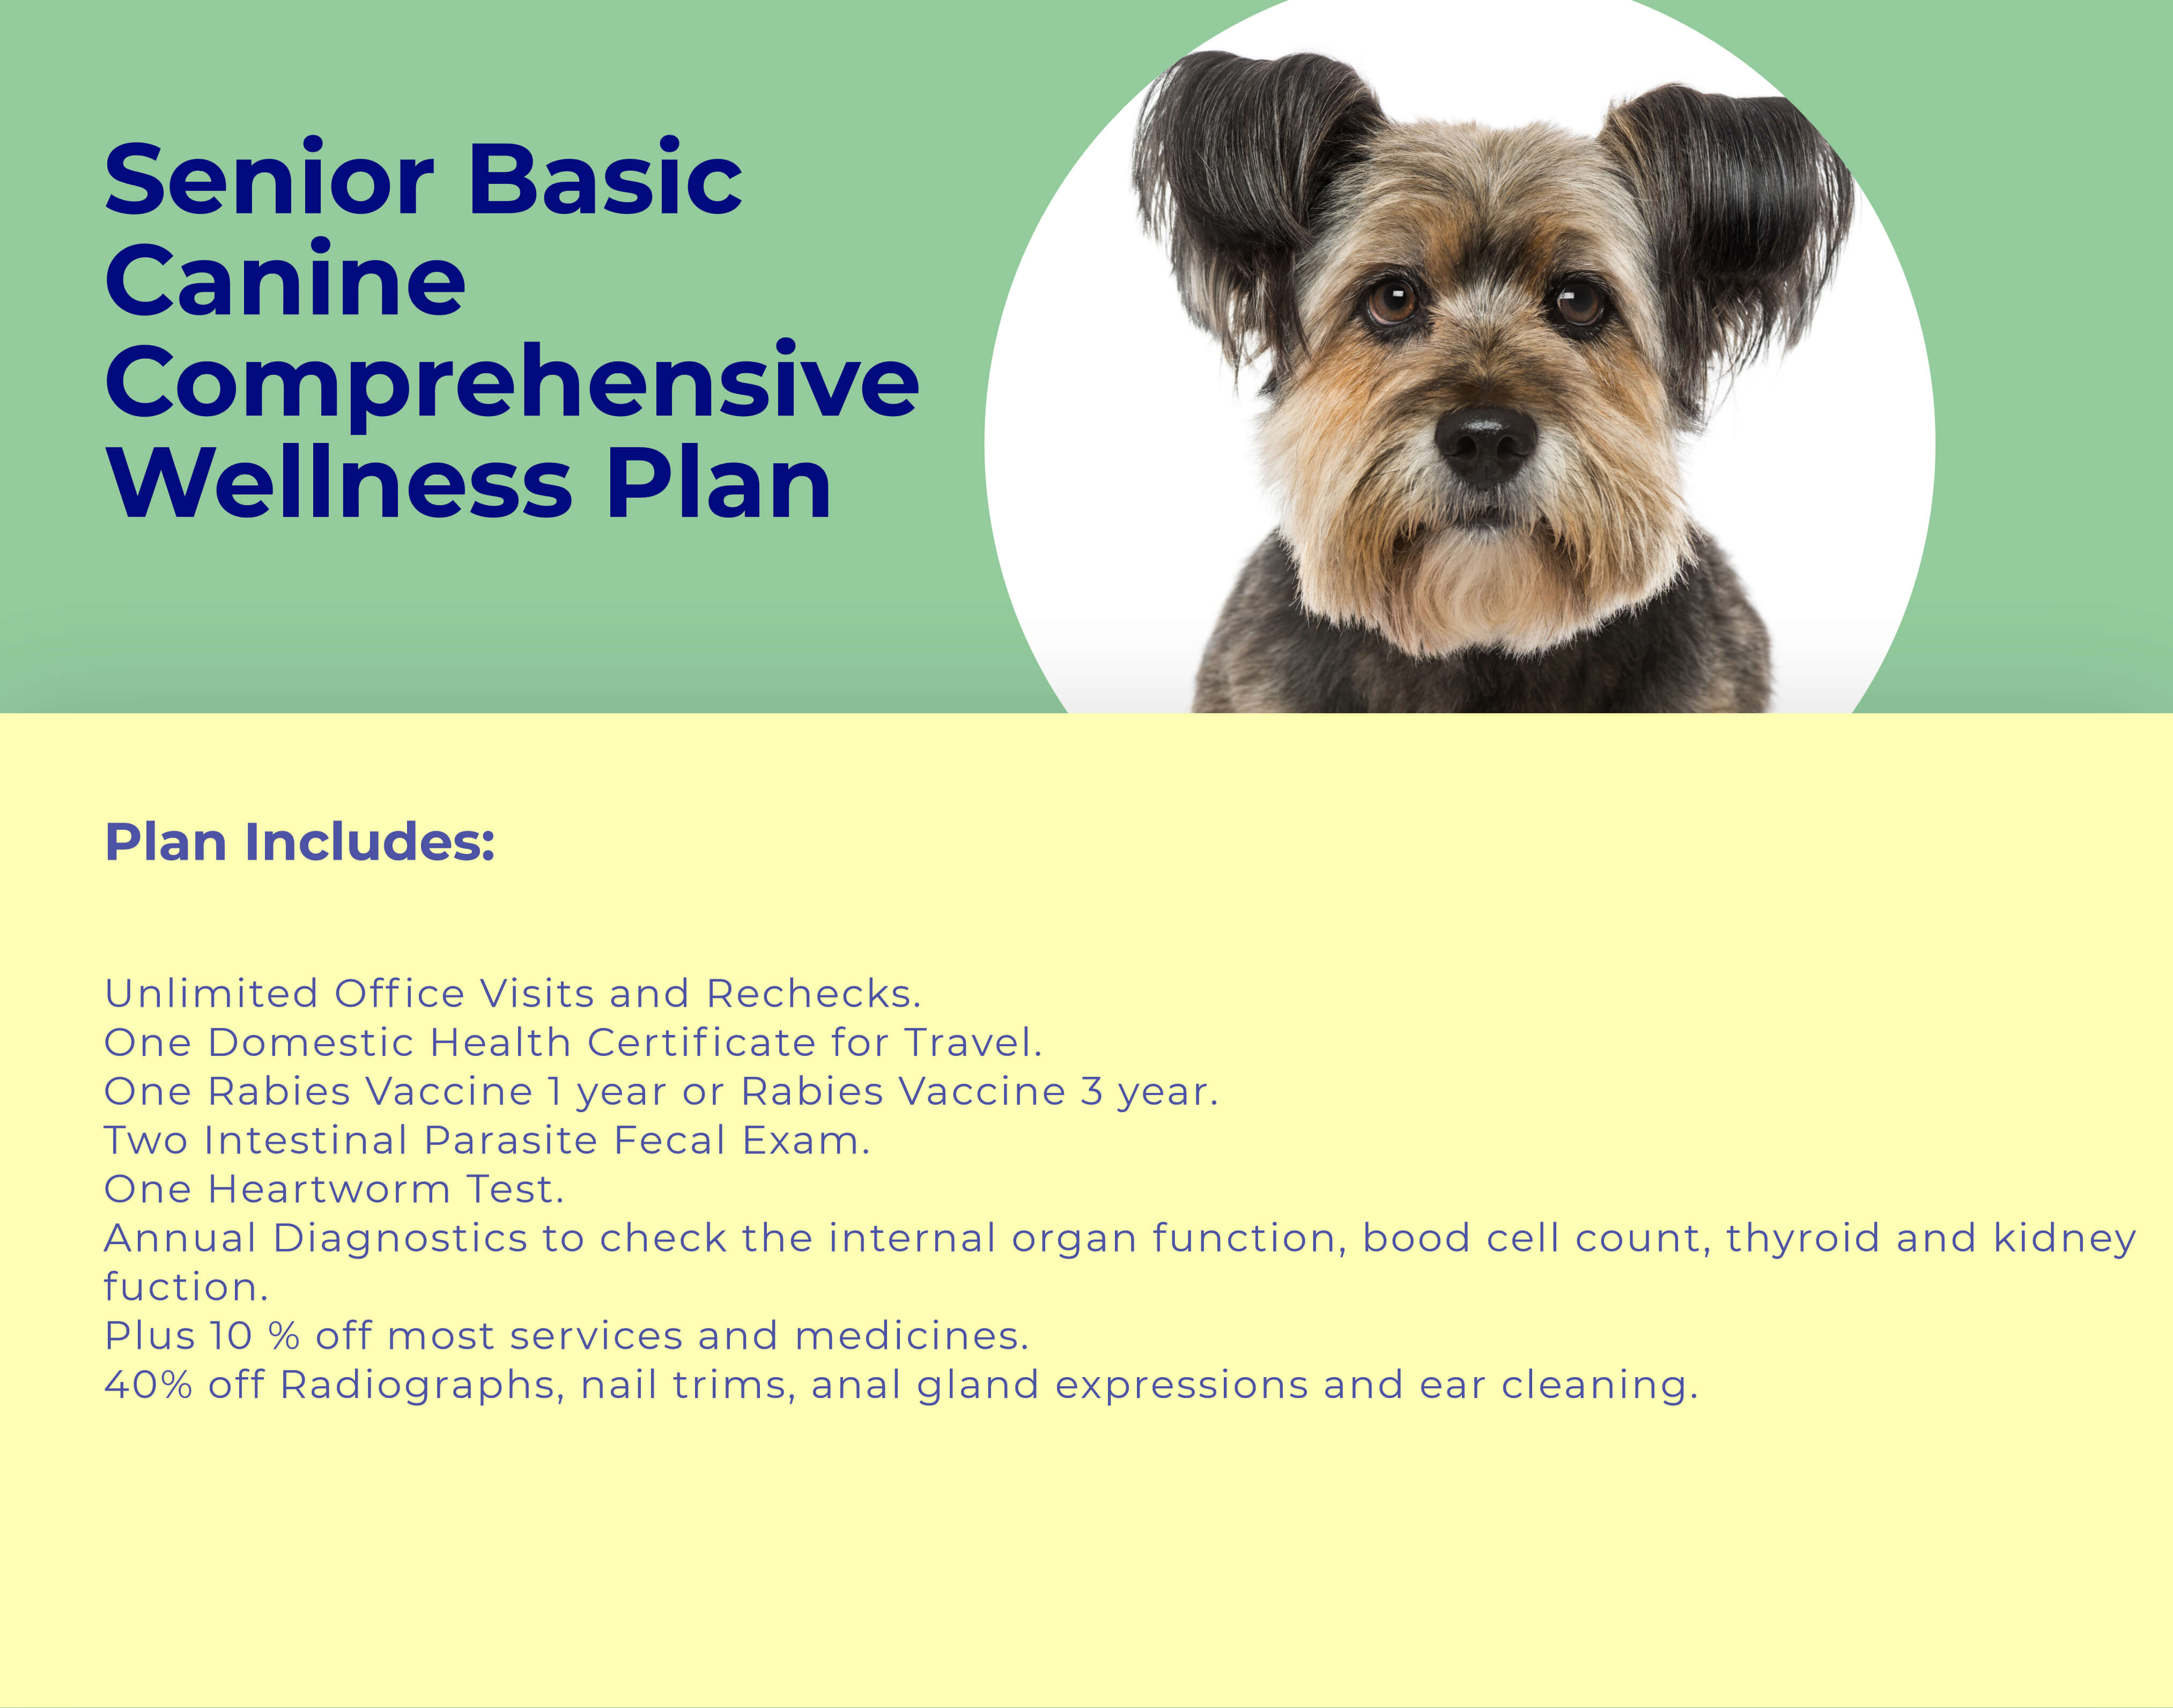 Senior Dog BASIC Comprehensive Wellness Plan at animal wellness clinic